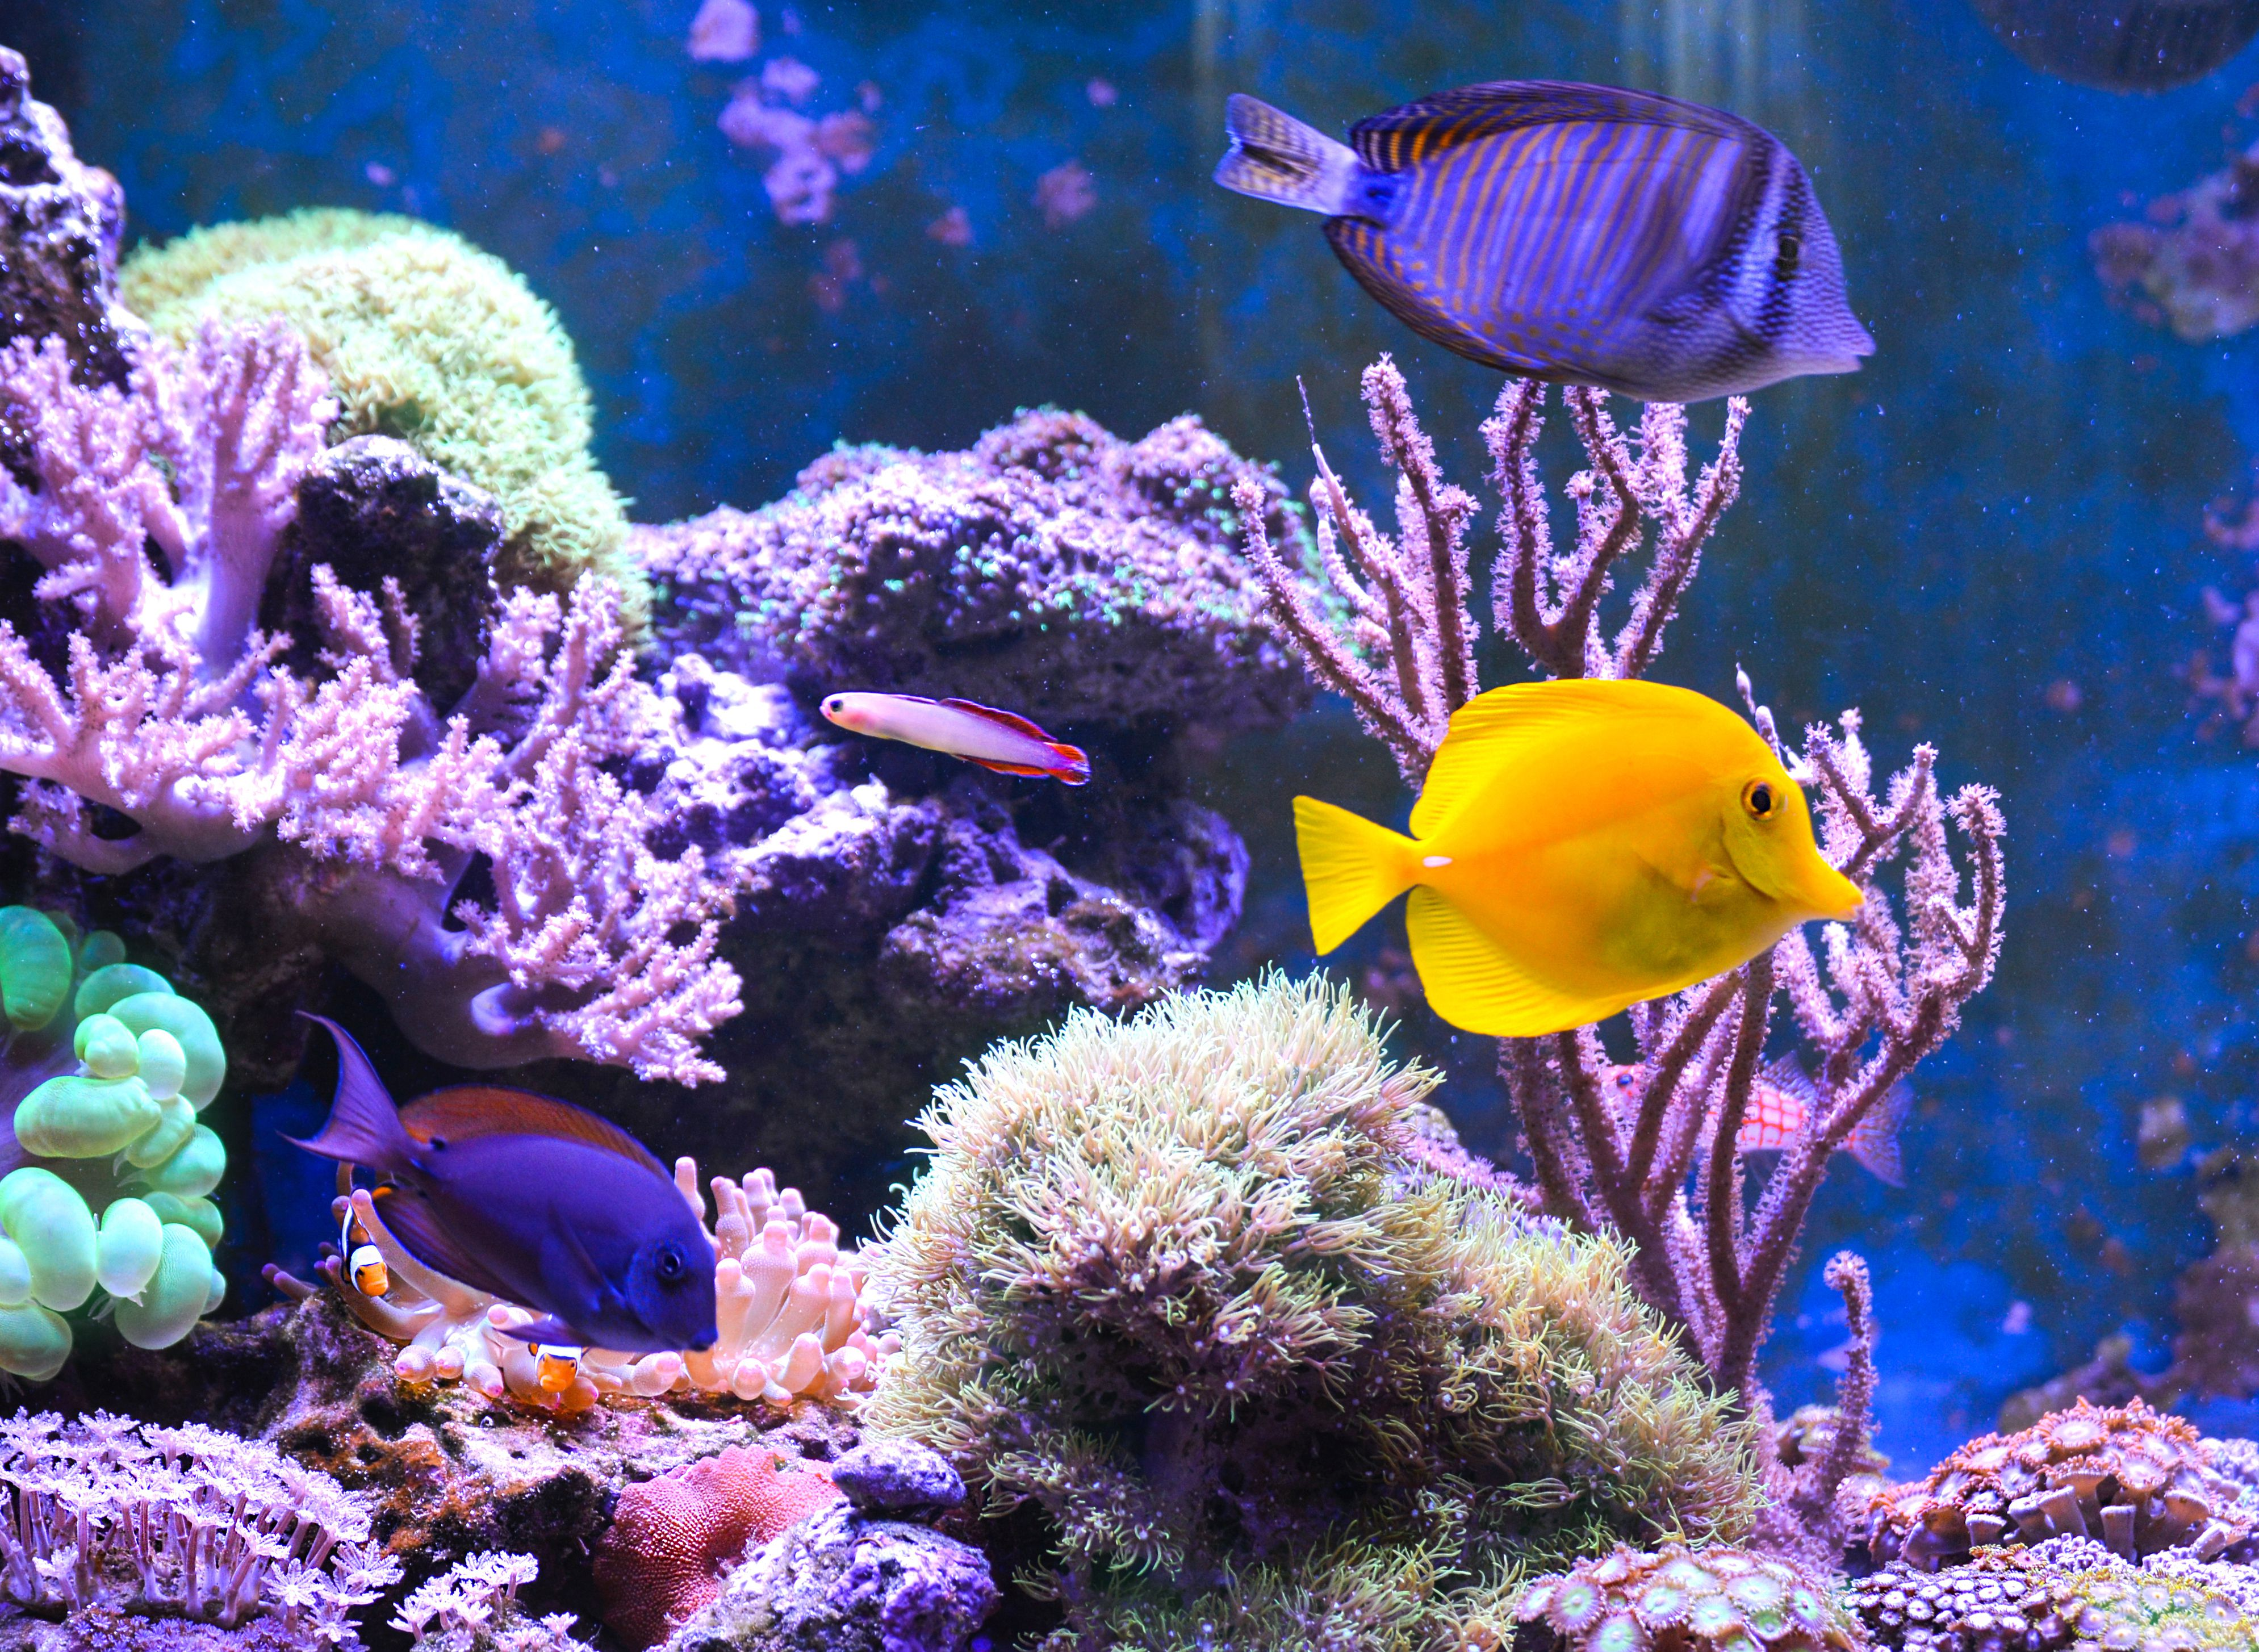 Causes of New Tank Syndrone in Saltwater Aquariums